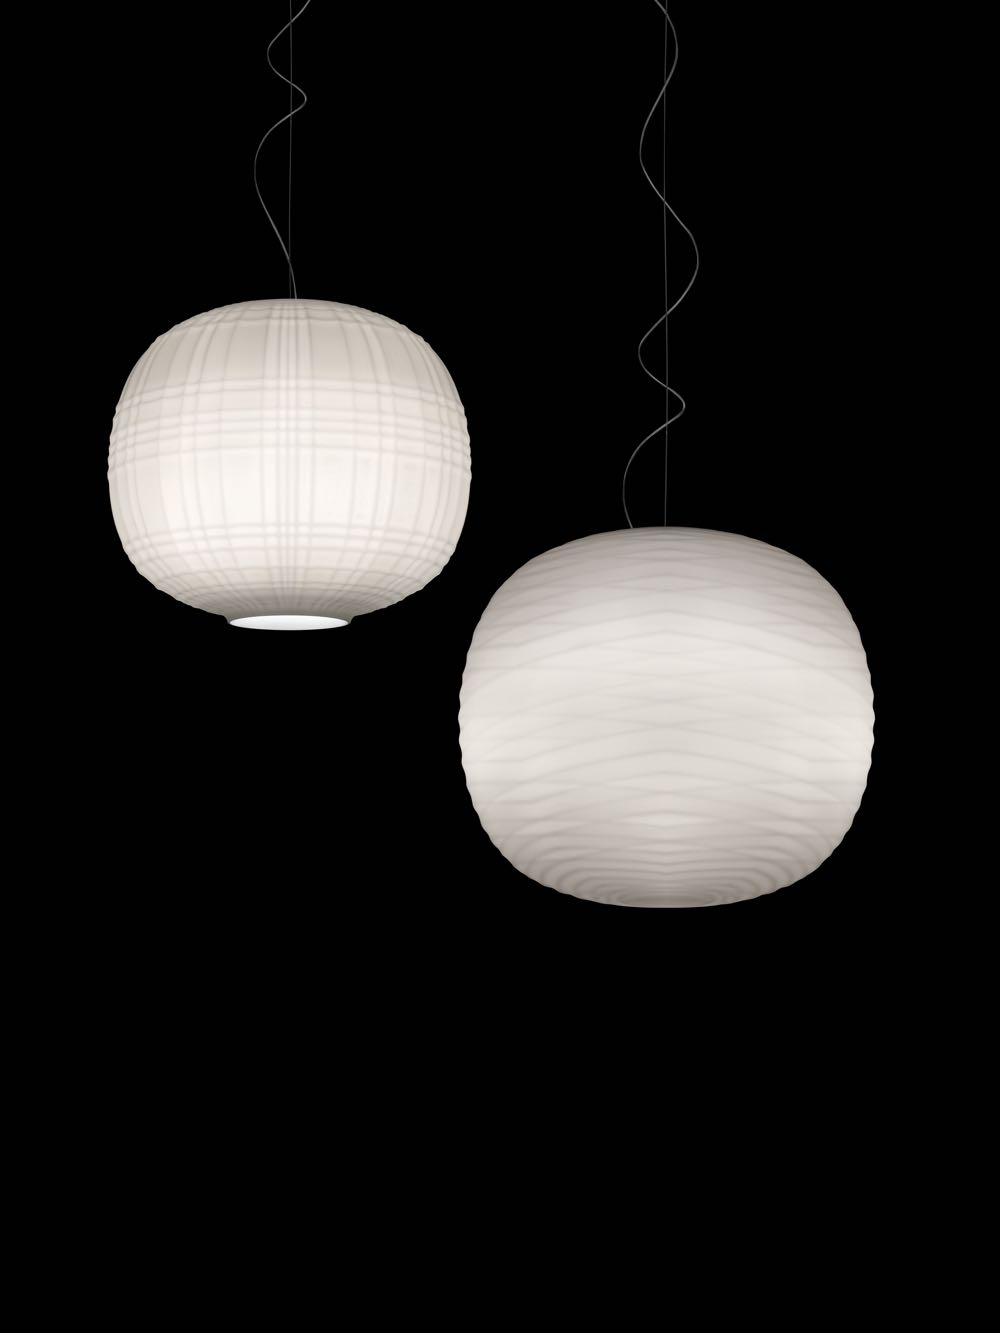 The 'Tartan' and 'Gem' pendants in opaline glass by Ludovica and Roberto Palomba for  Foscarini.